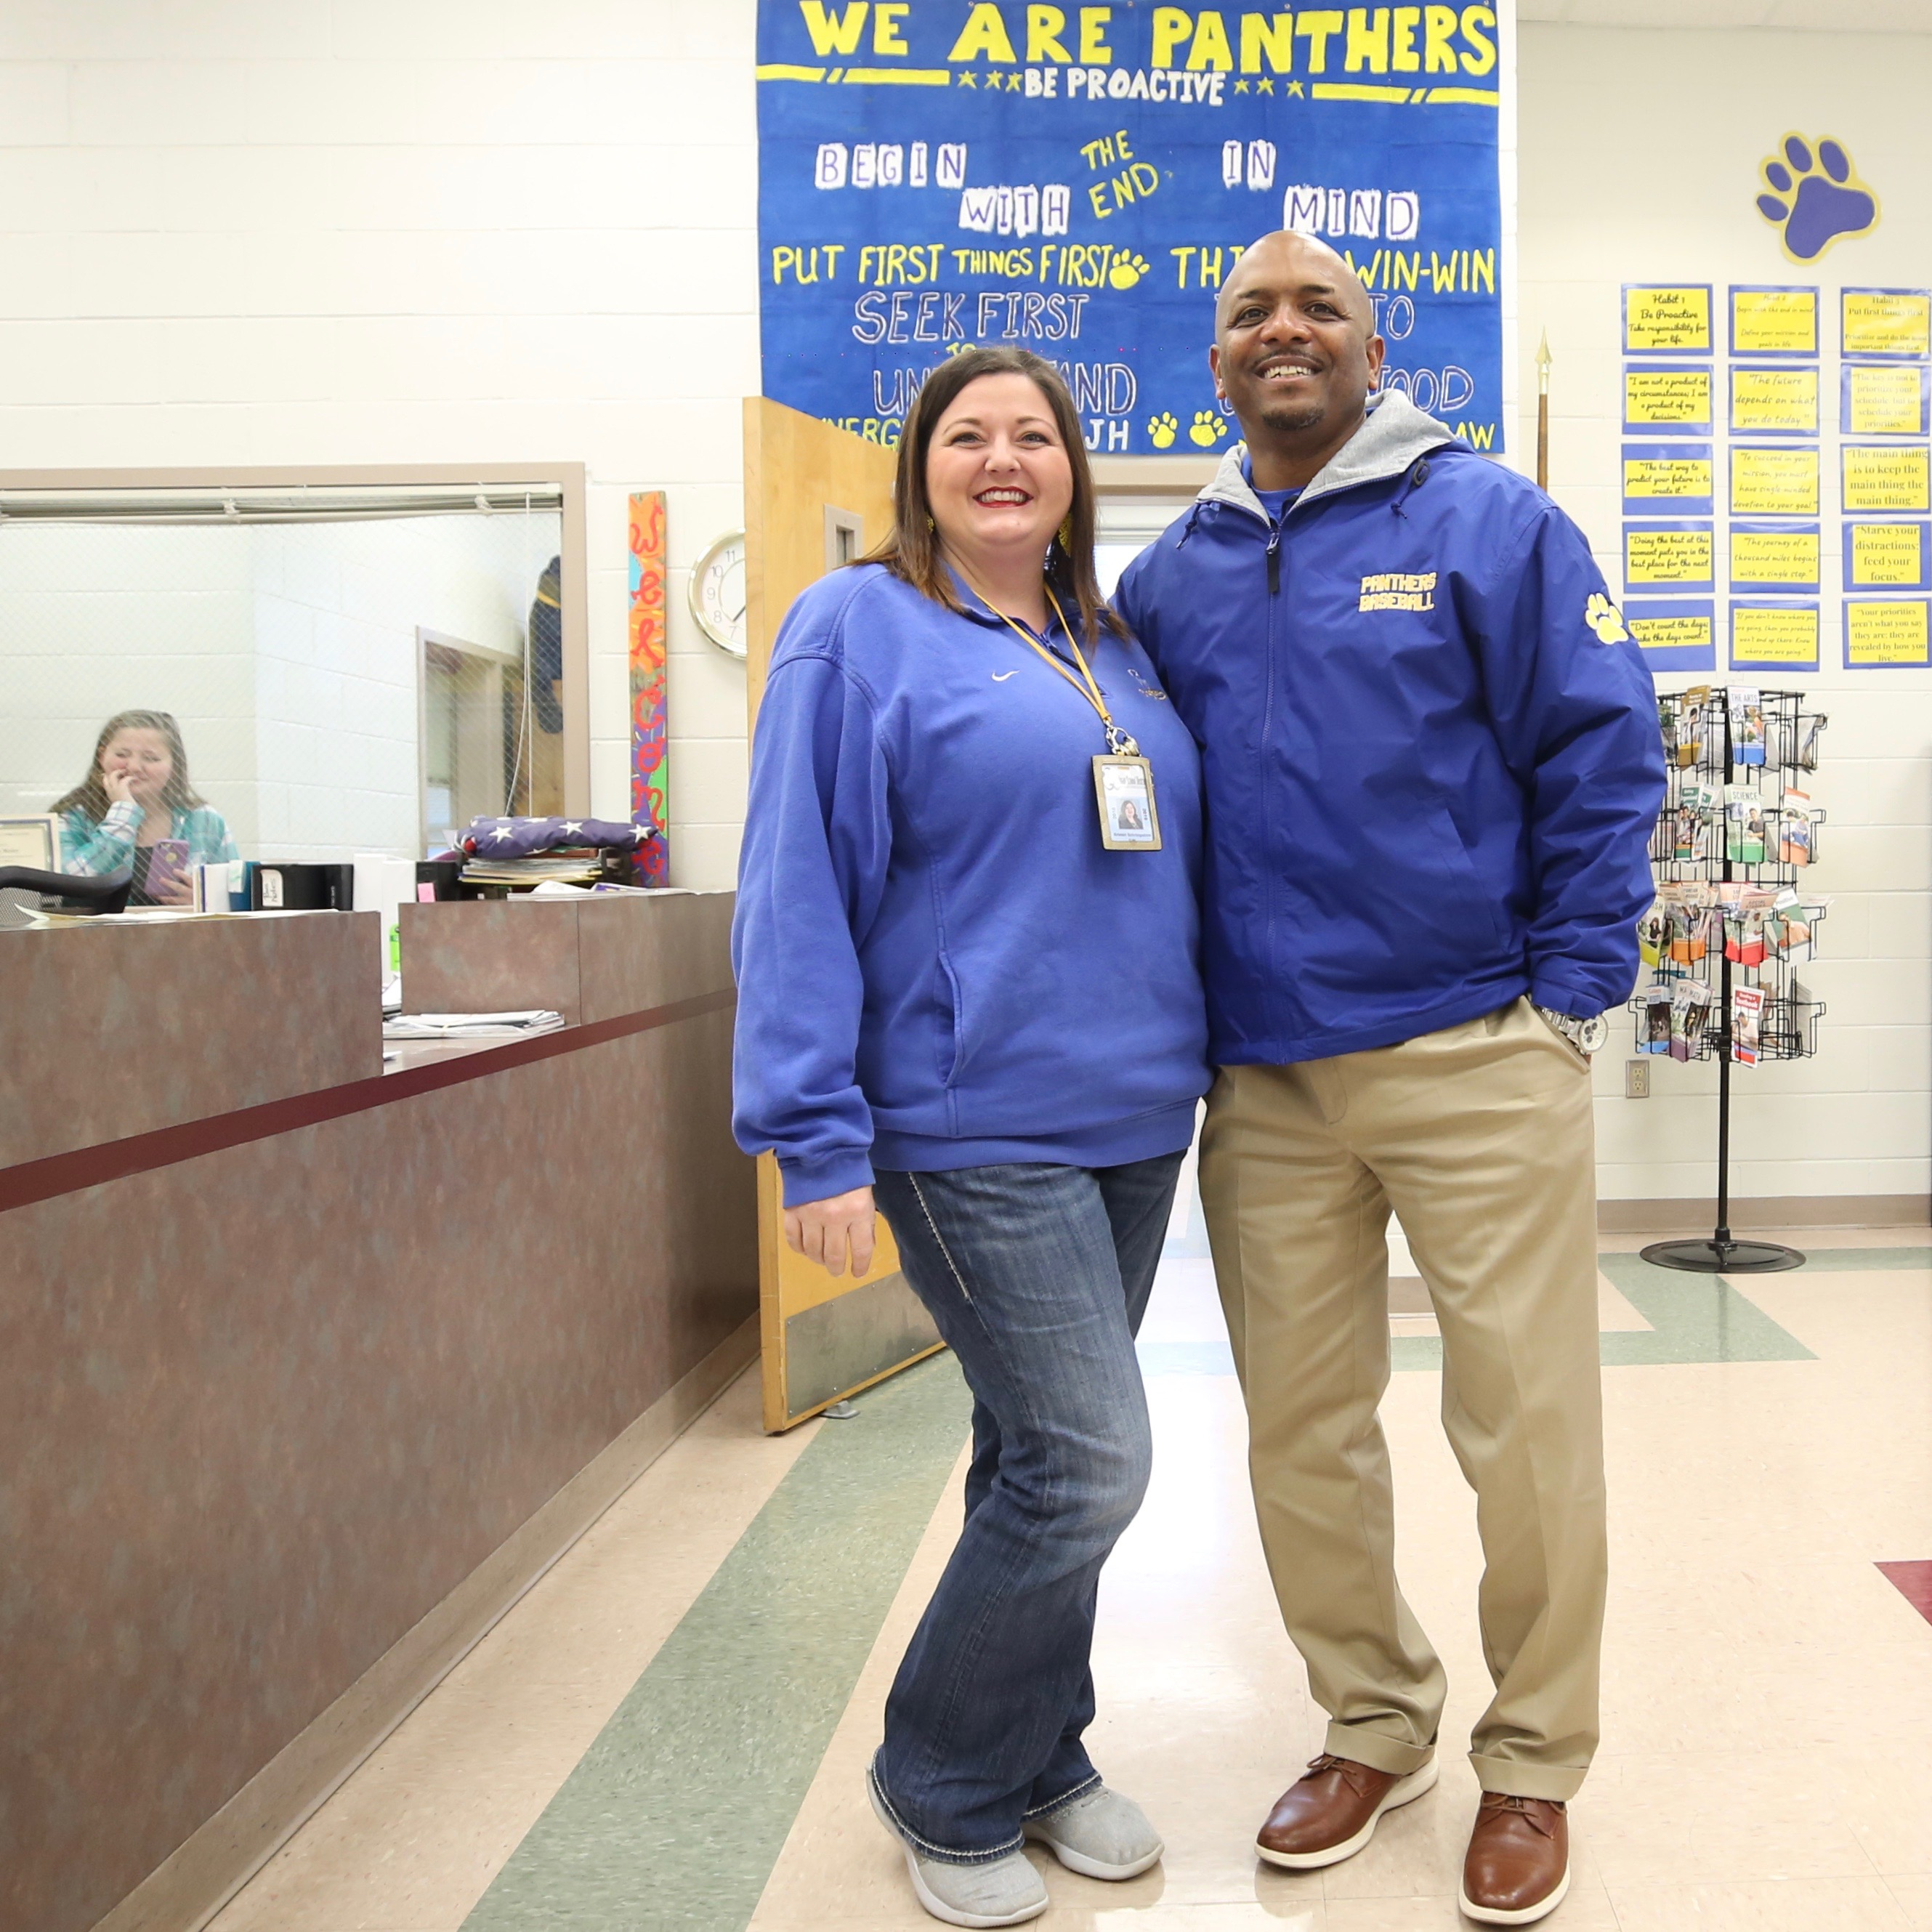 Mrs. Schrimpshire and Dr. Holloway pose in blue to signify their support of public schools.